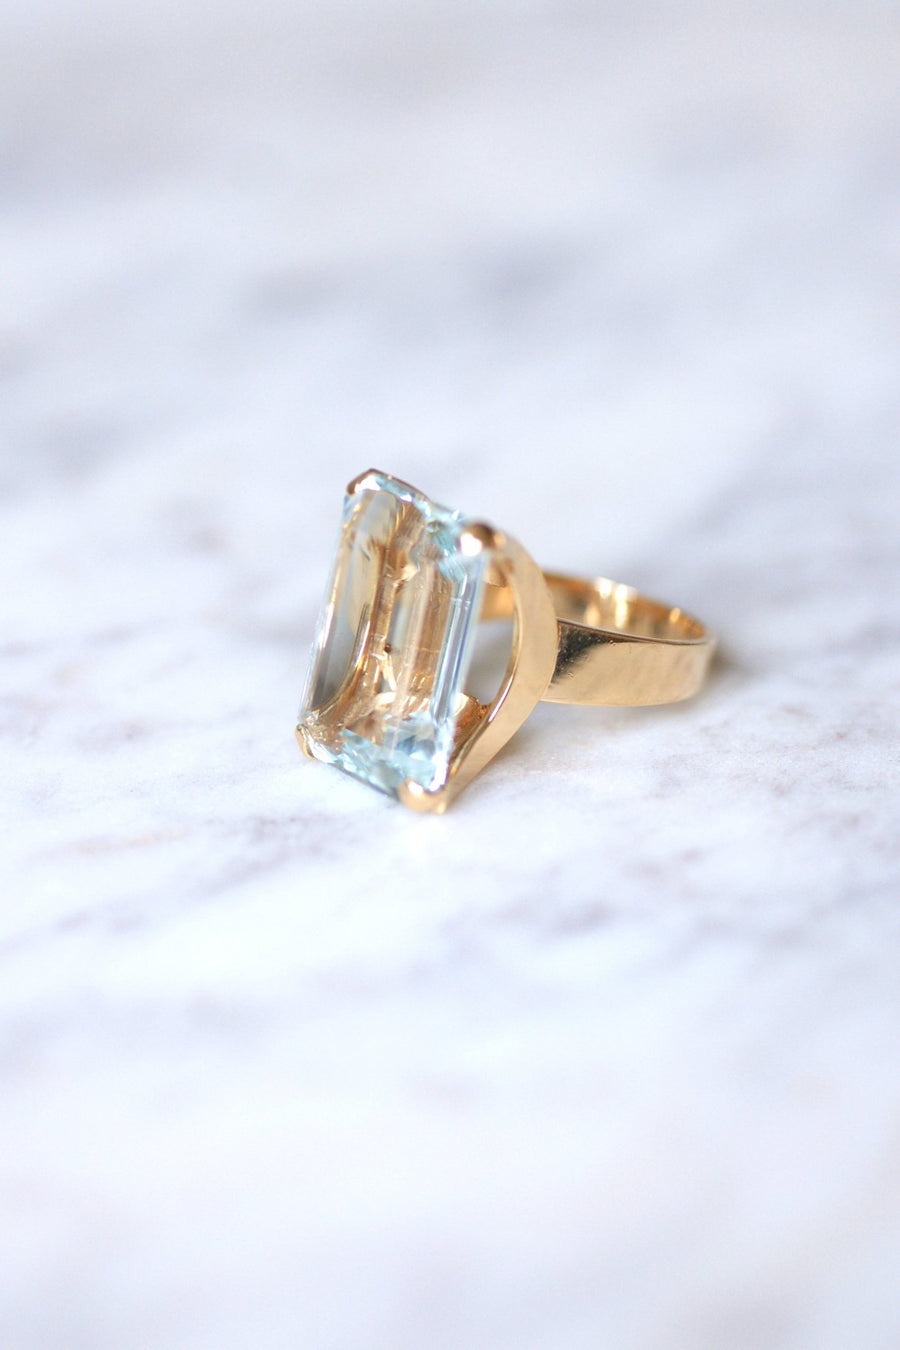 Bague de cocktail vintage aigue-marine 15 Cts sur or rose - Galerie Pénélope